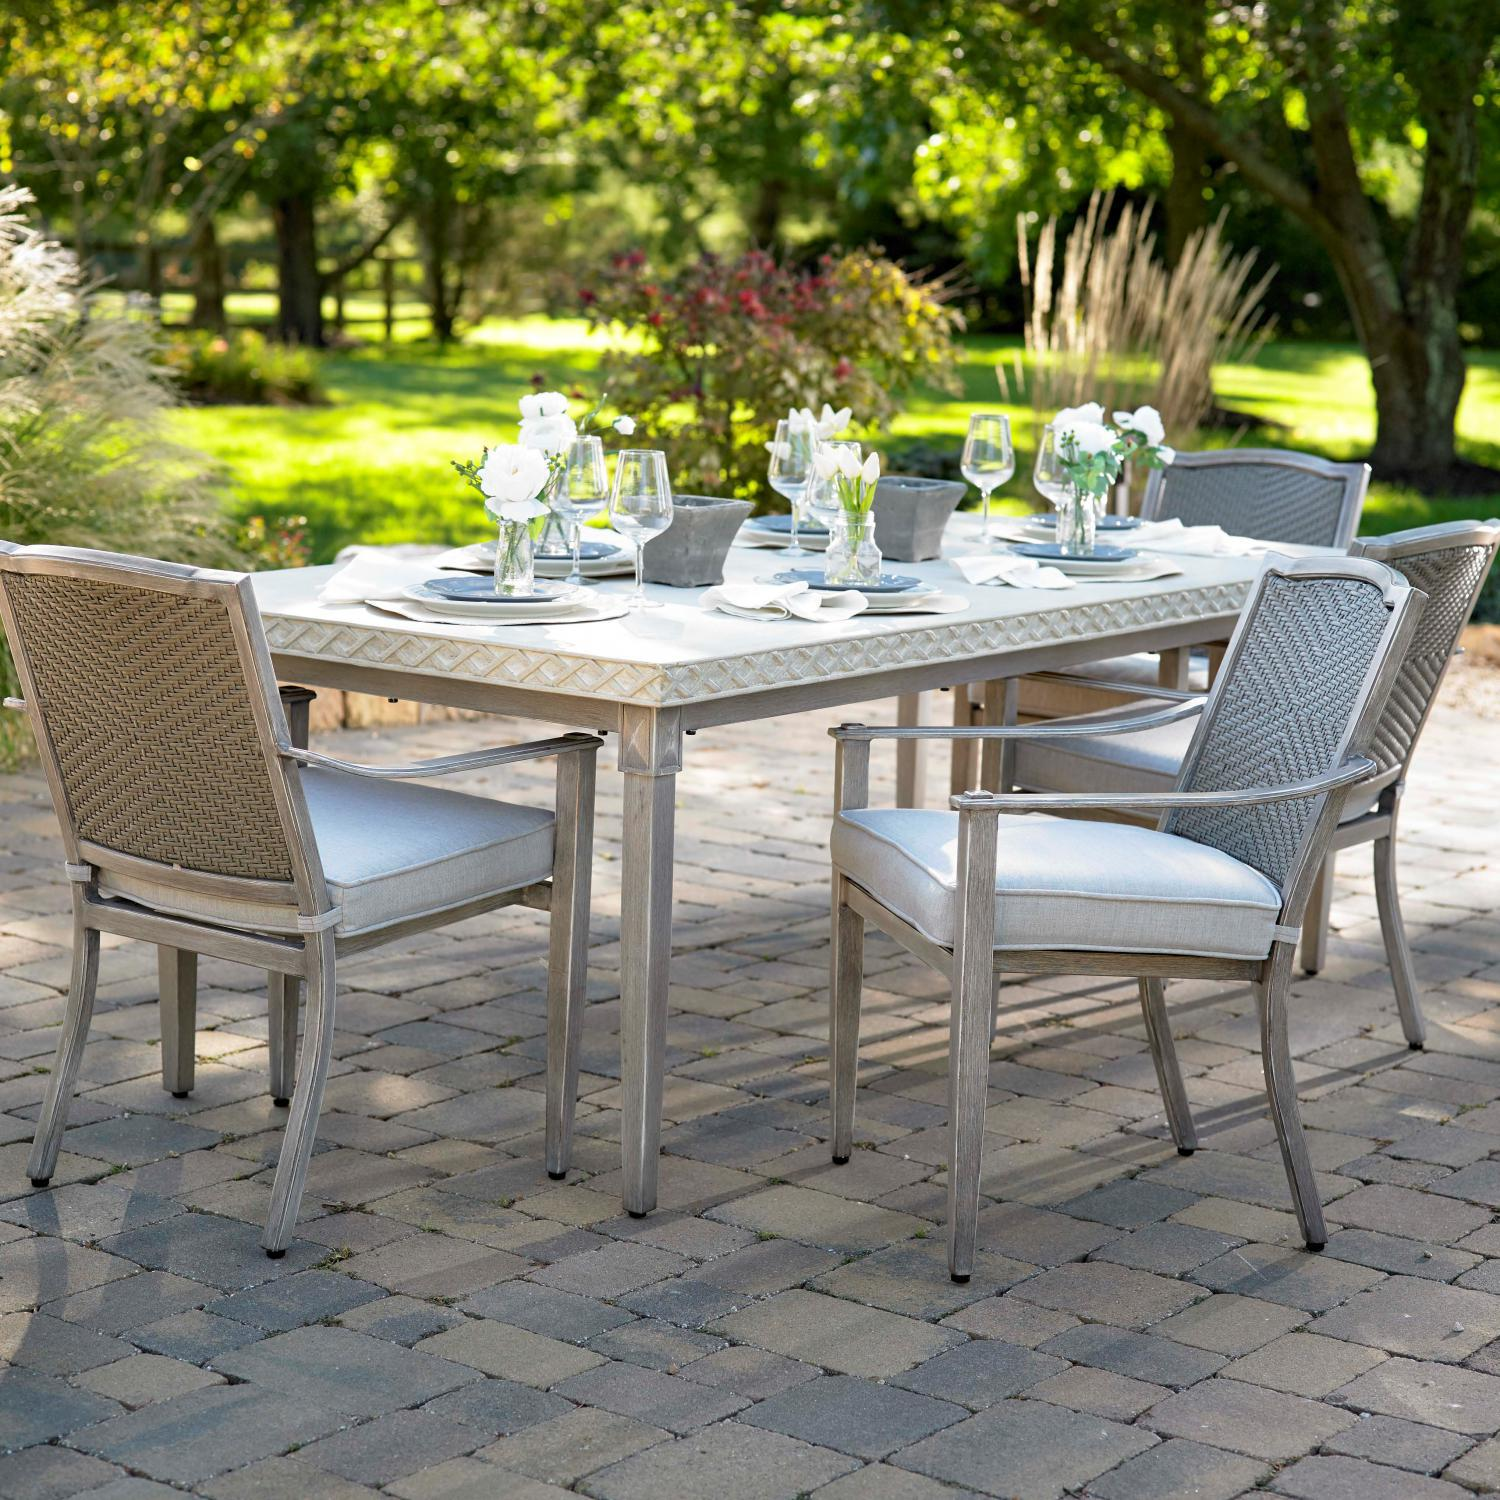 Plank & Hide Pelham 5 Piece Cast Aluminum Patio Dining Set W/ Sunbrella Cast Silver Cushions - 20014-BRL + 20012-BRL